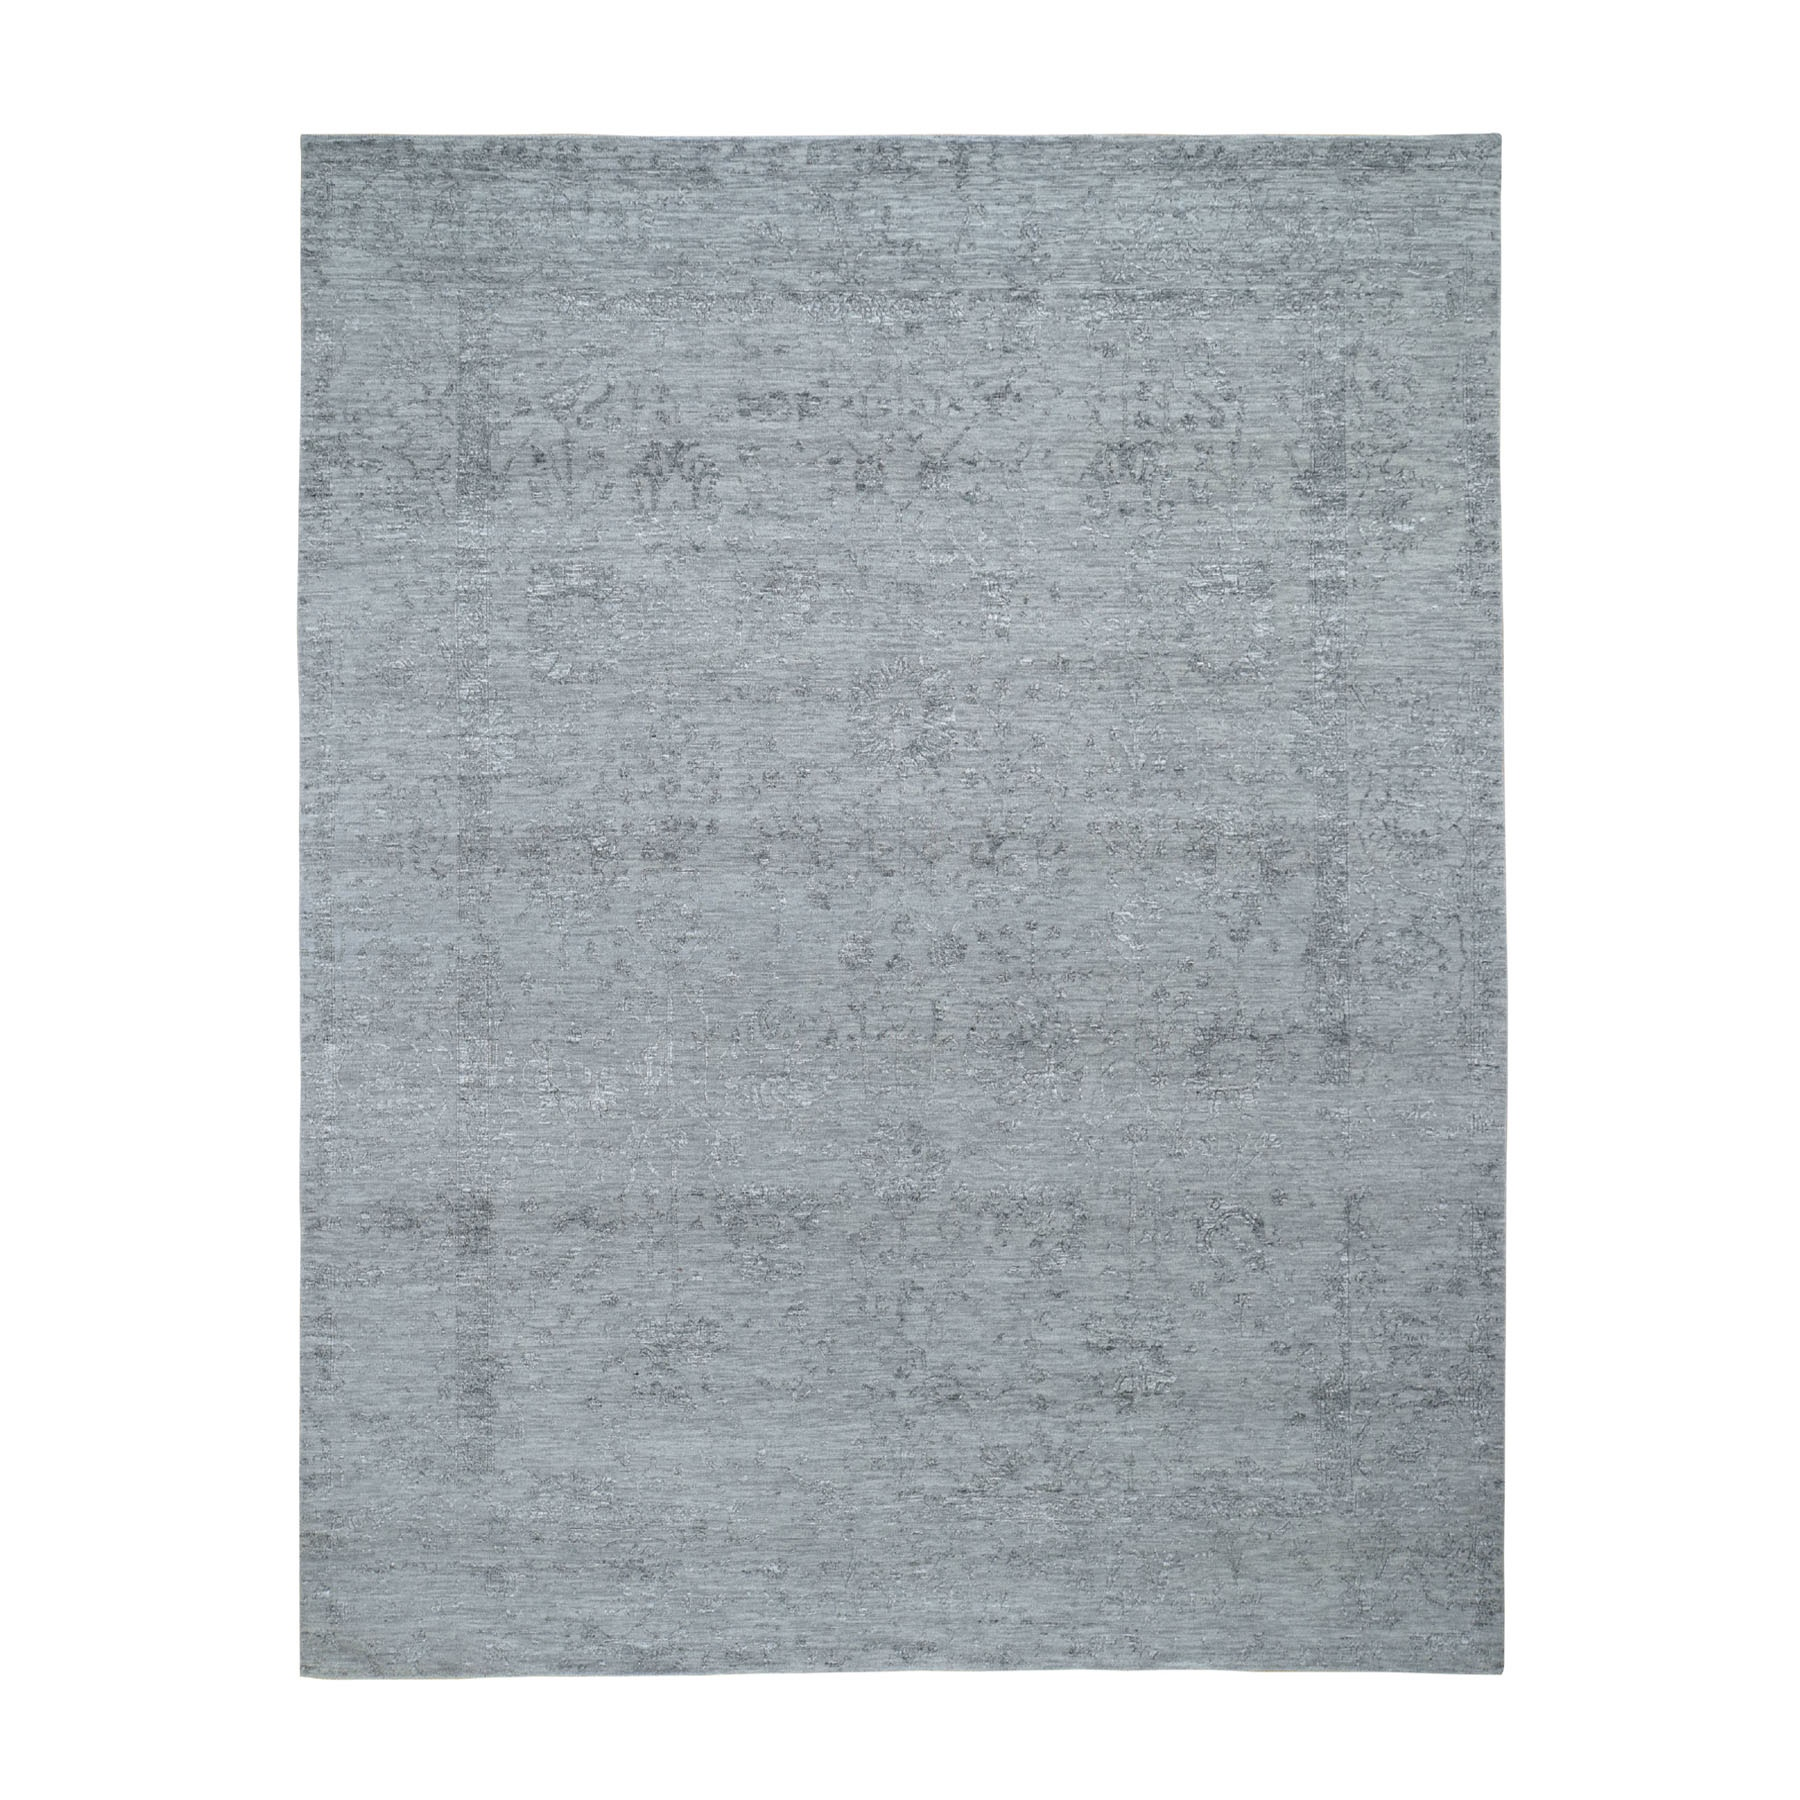 8'X10' Gray Tabriz Broken Design Wool And Silk Hand Knotted Oriental Rug moad8aeb